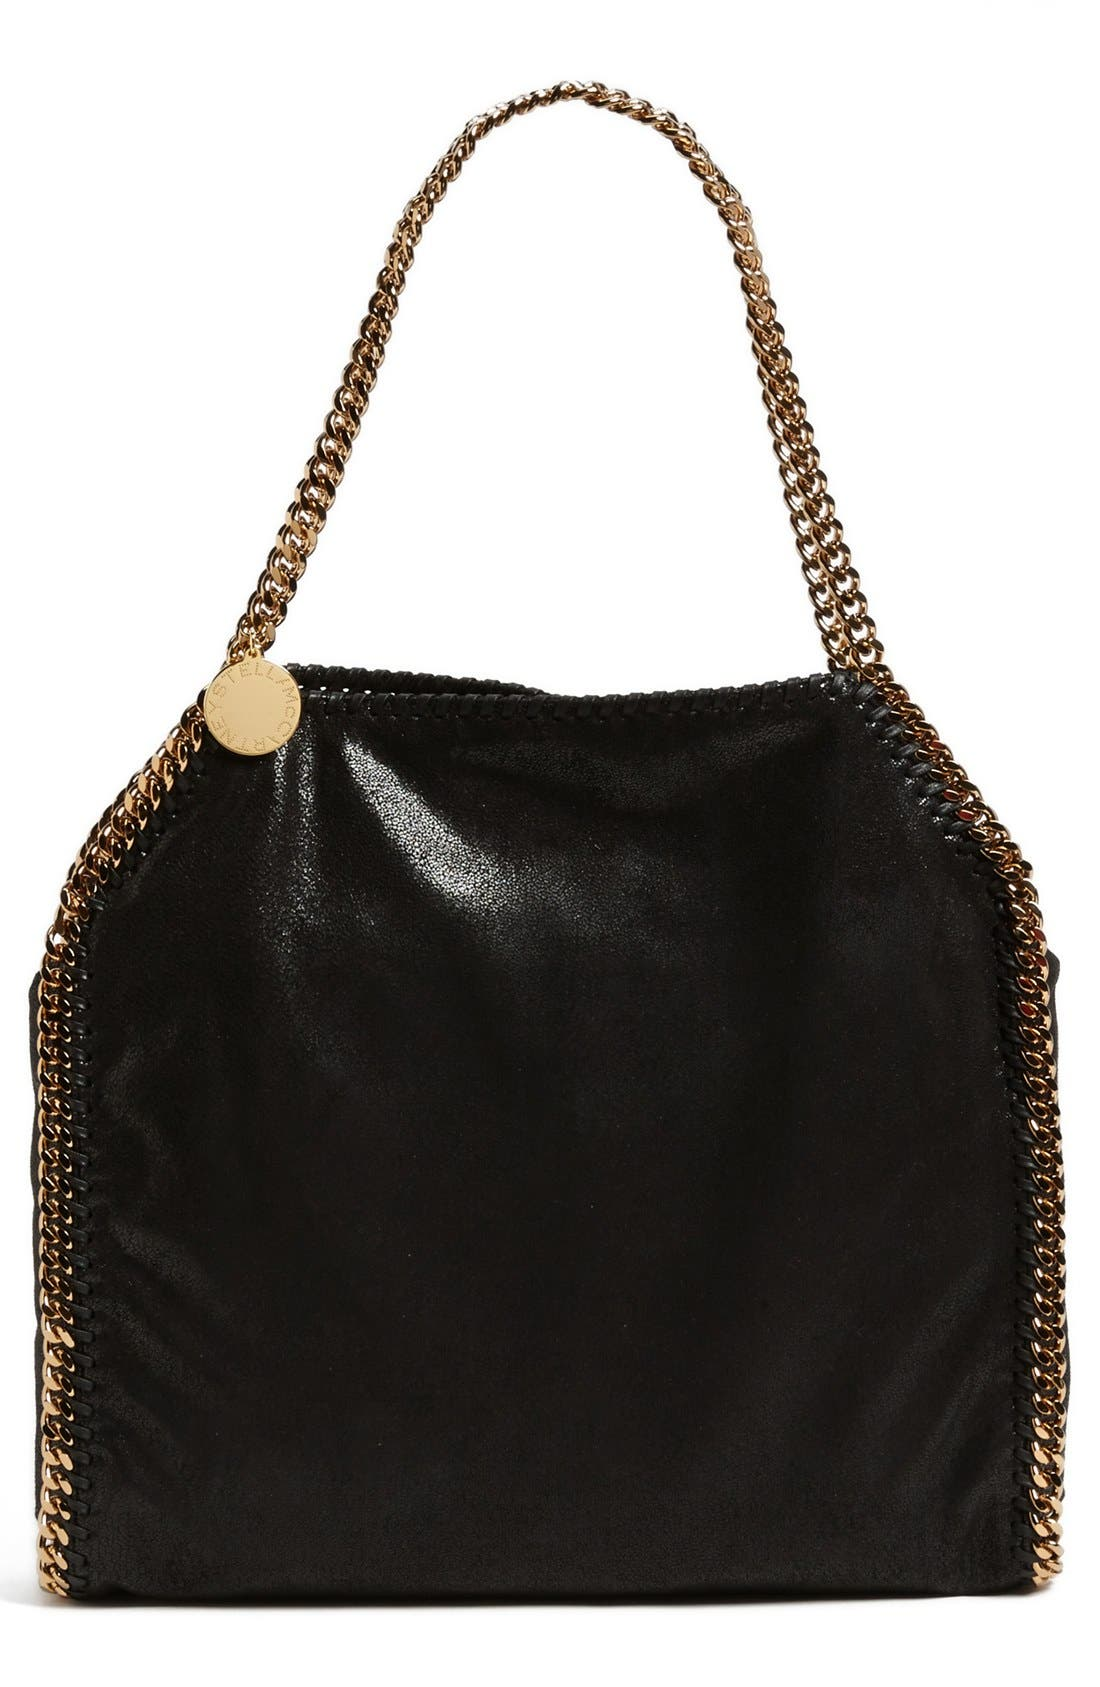 'Small Falabella - Shaggy Deer' Faux Leather Tote,                             Main thumbnail 1, color,                             Black